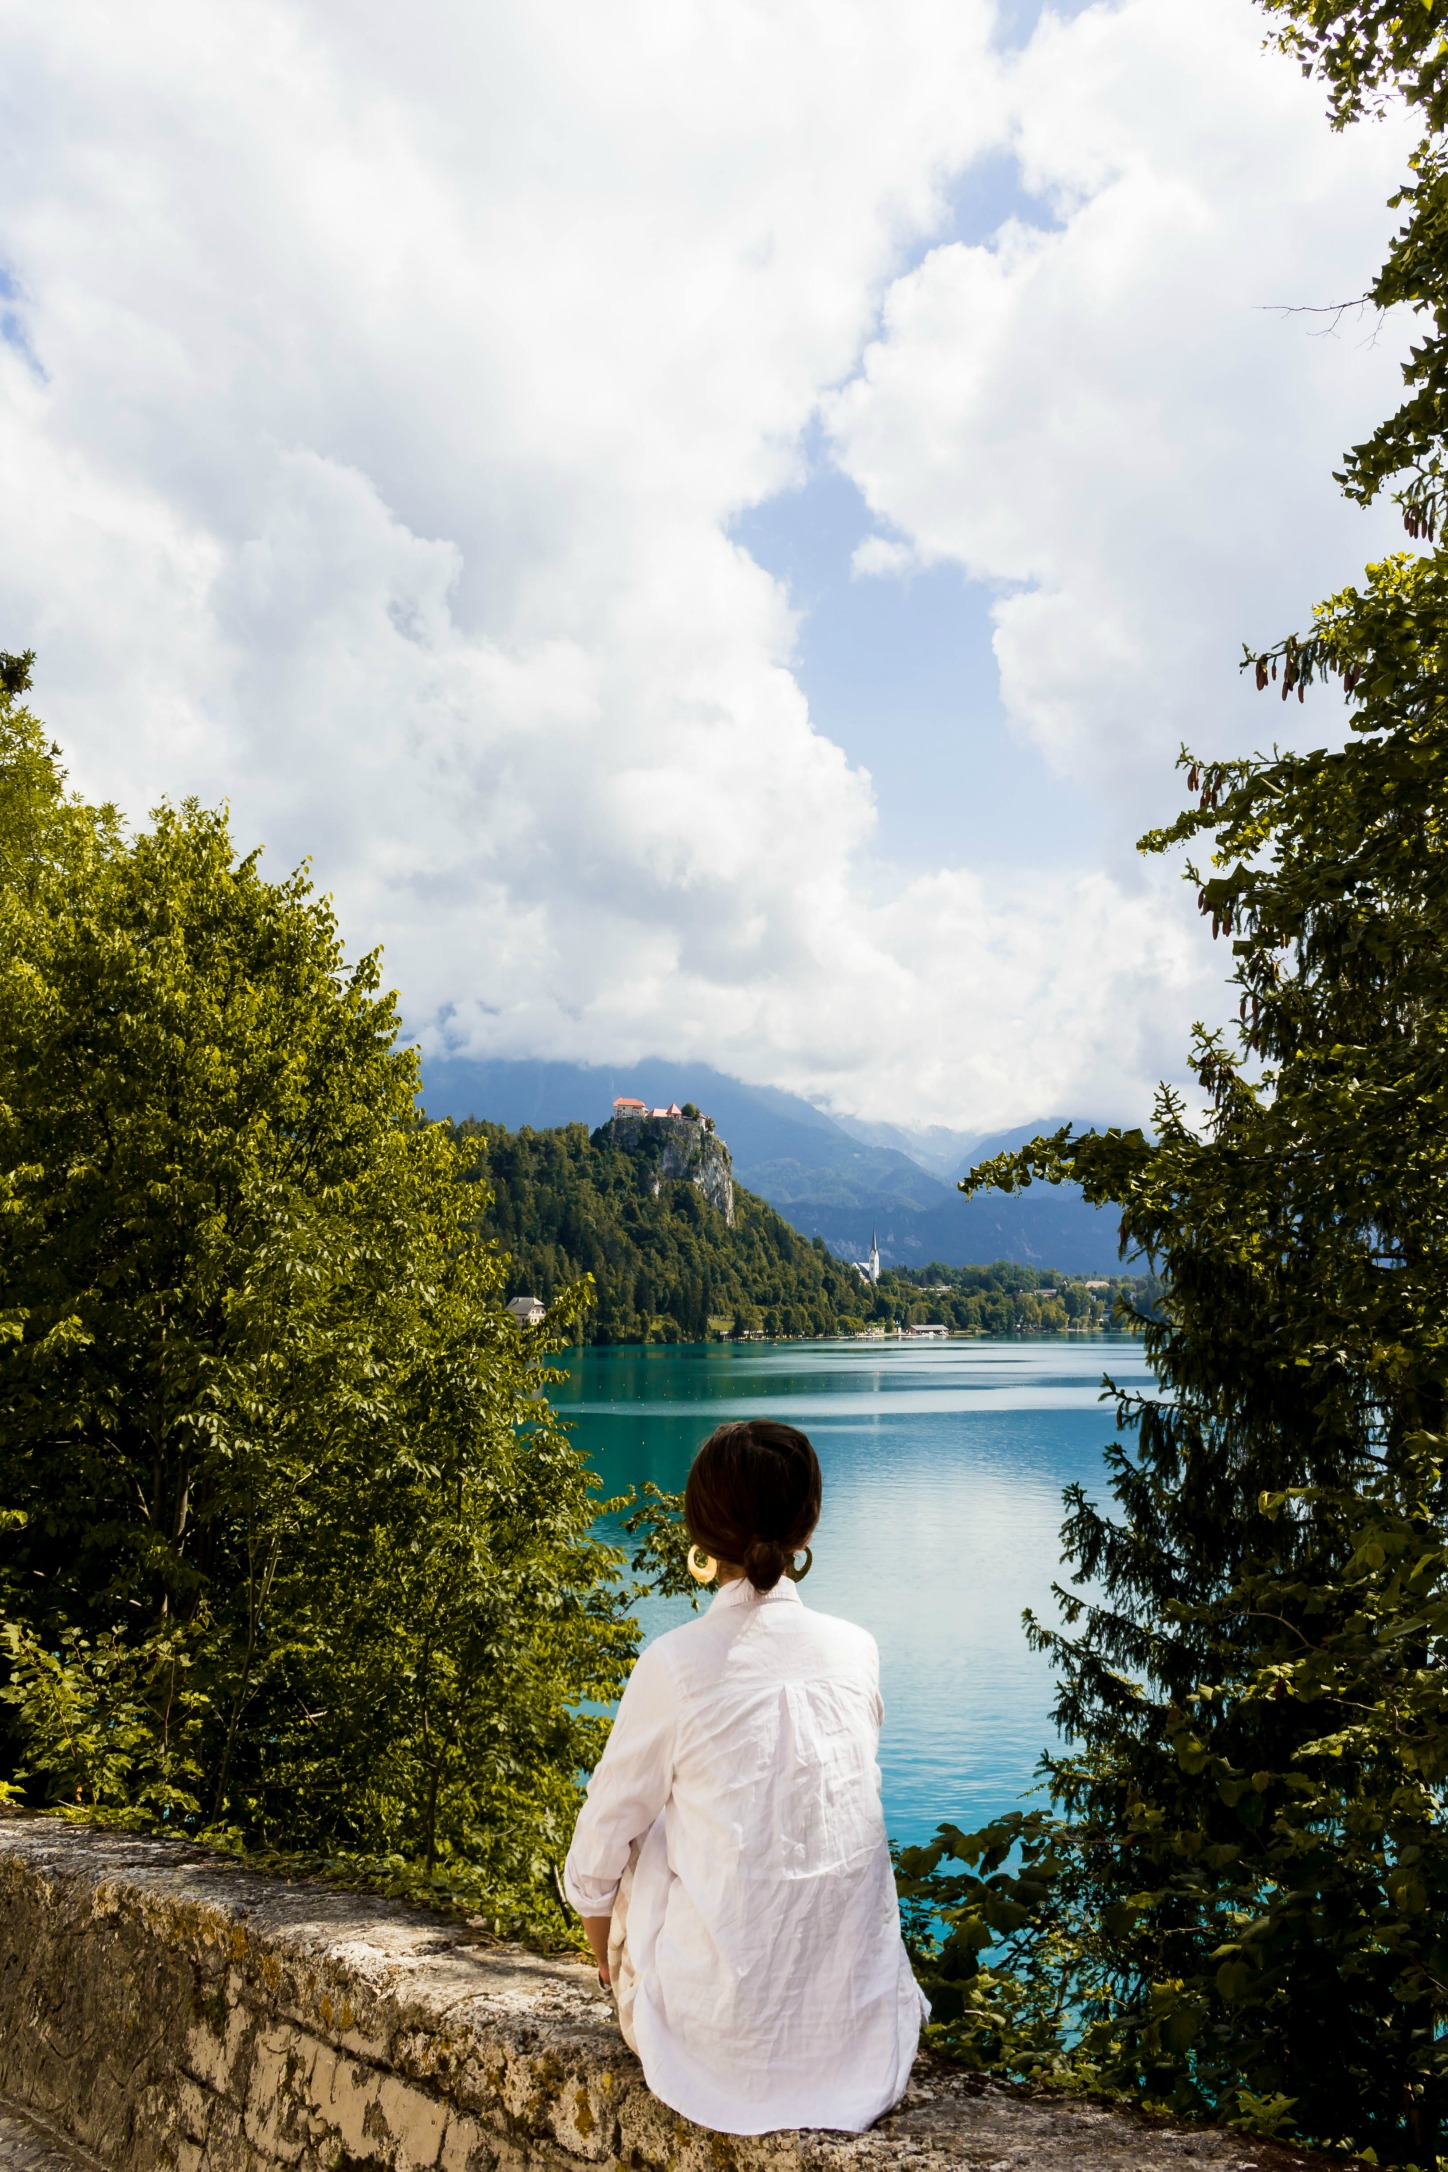 how to spend the perfect day in Lake Bled, Slovenia: how to get there + 5 fun things to do